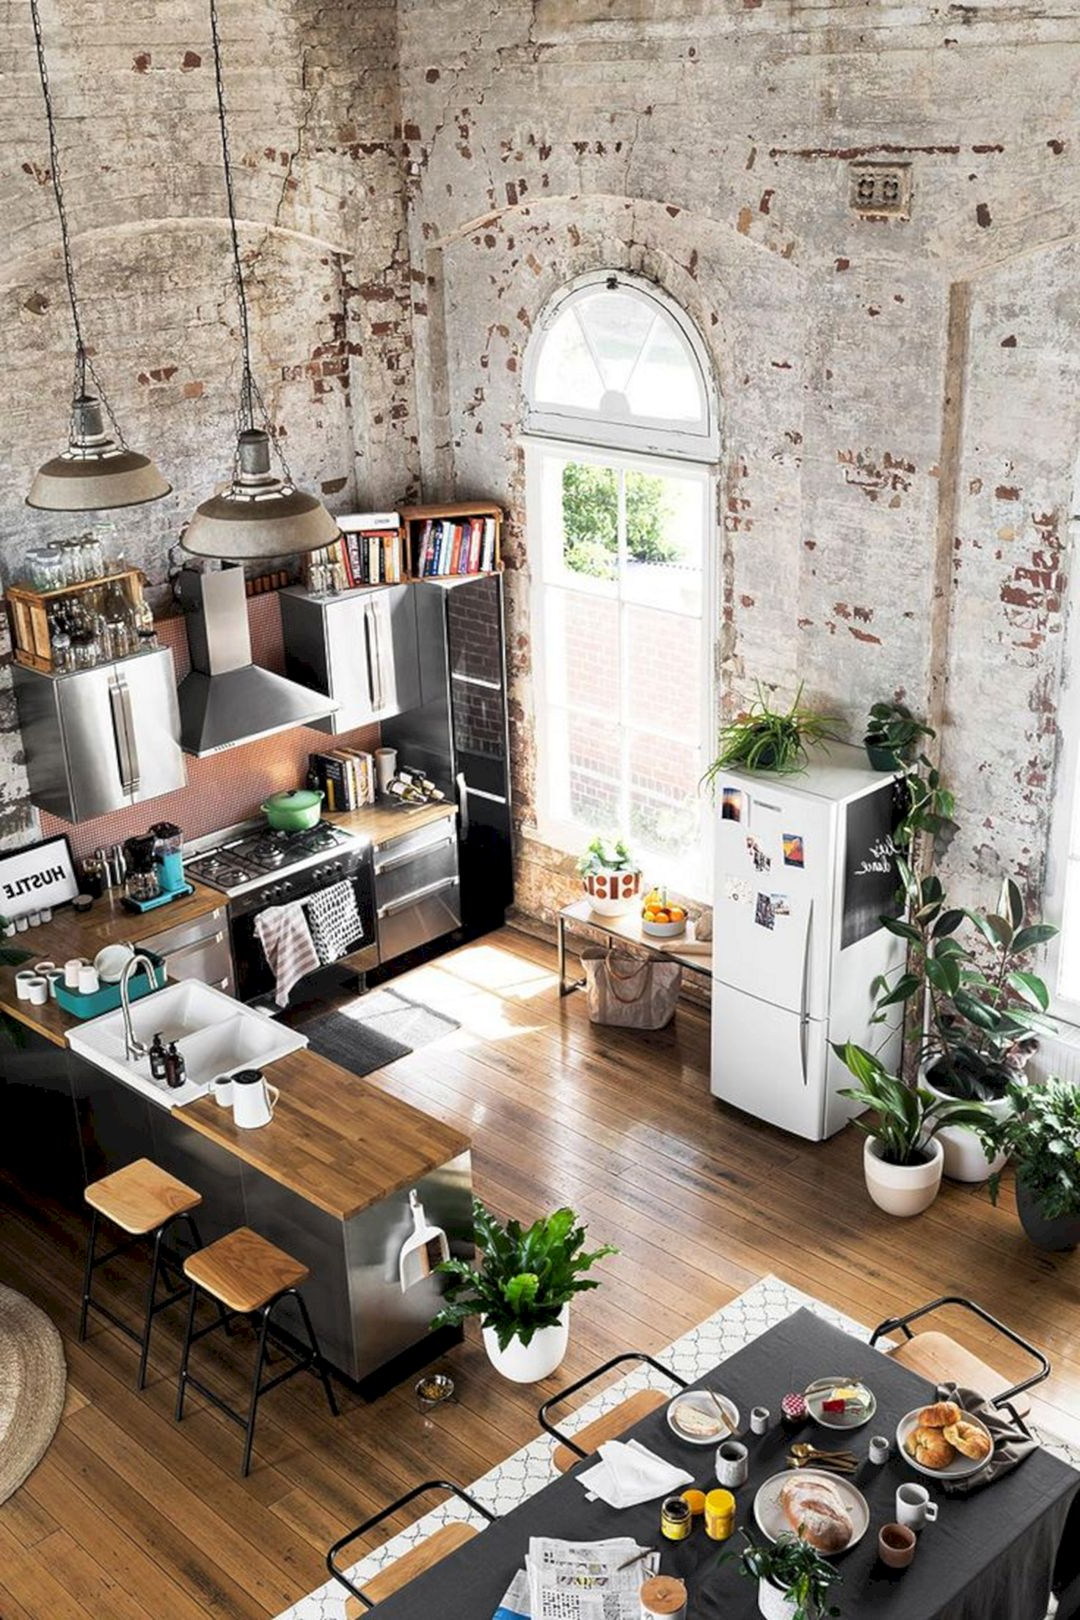 Amazing Idea About Loft Living Rooms You Need To Sample 51 Amazing Idea About Loft Living Rooms